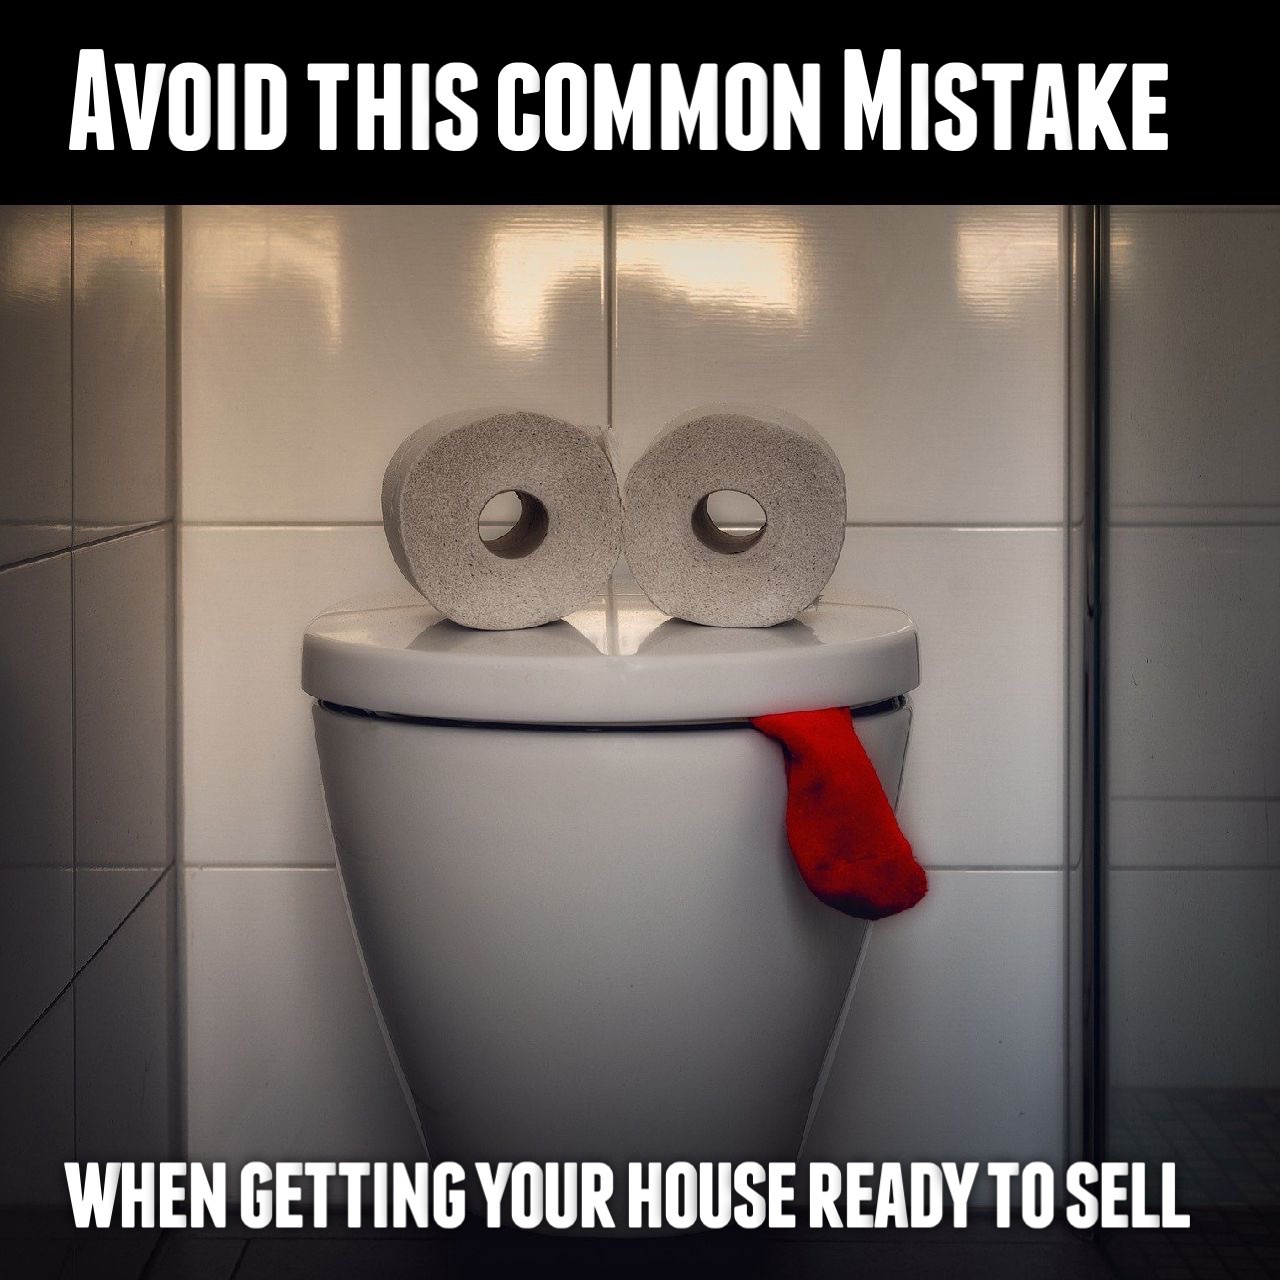 Avoid This Mistake When Getting Your Home Ready to Sell